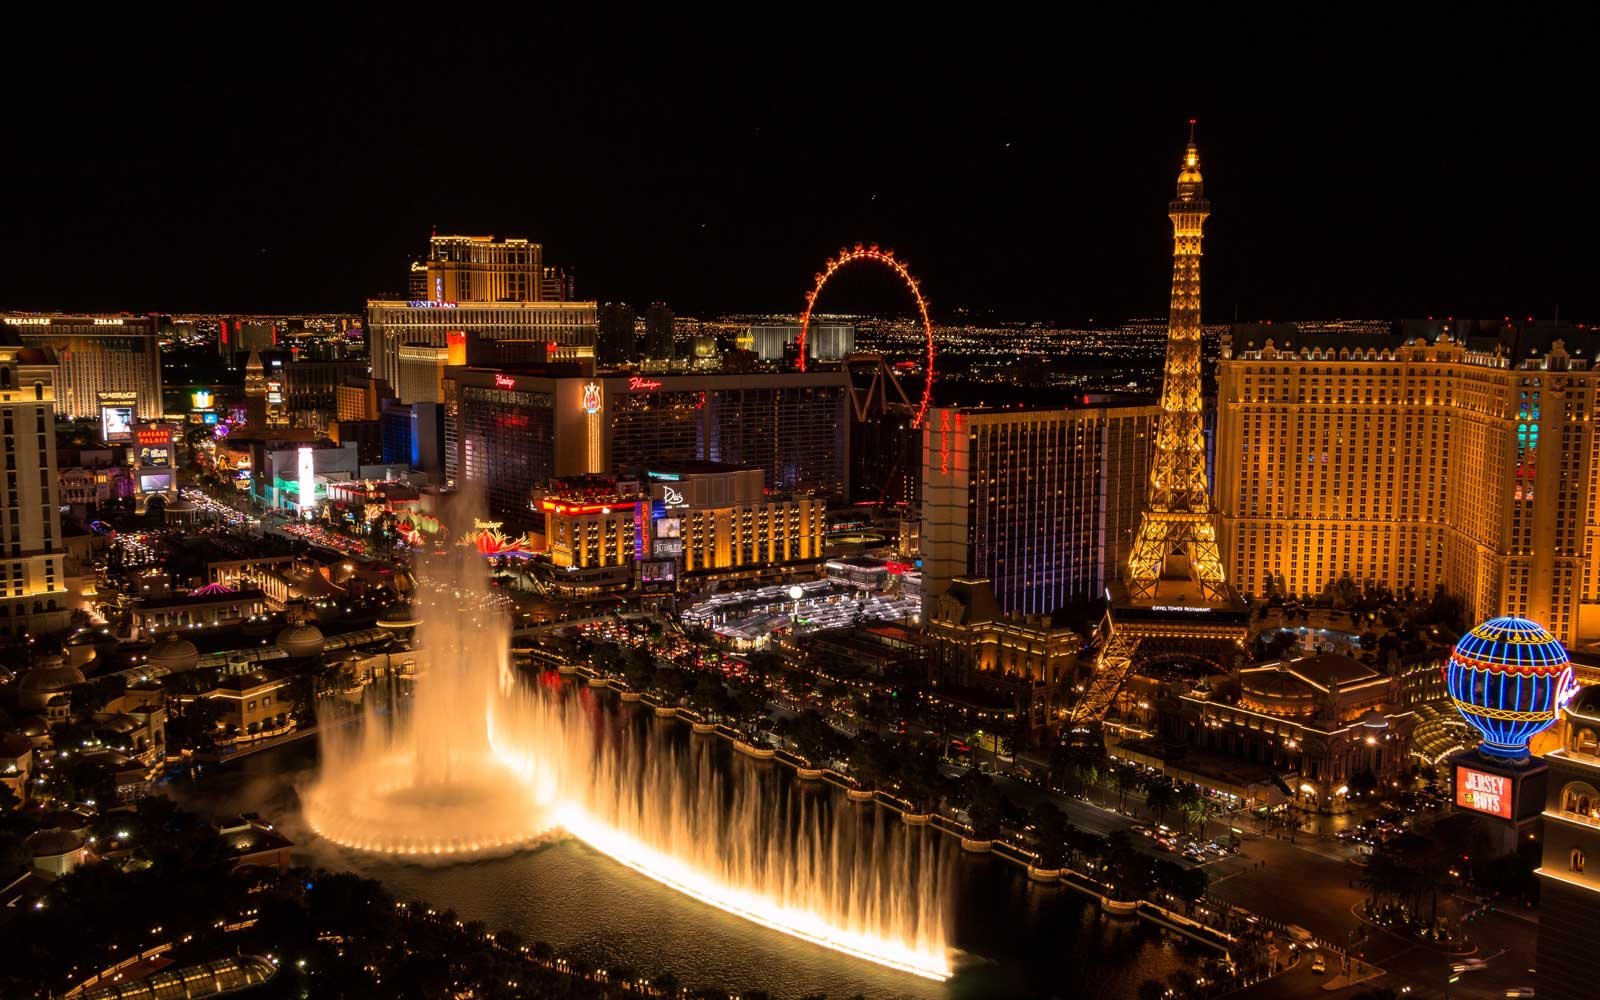 Fly to popular stops like Las Vegas for a discount with Alaska Airlines' latest sale.